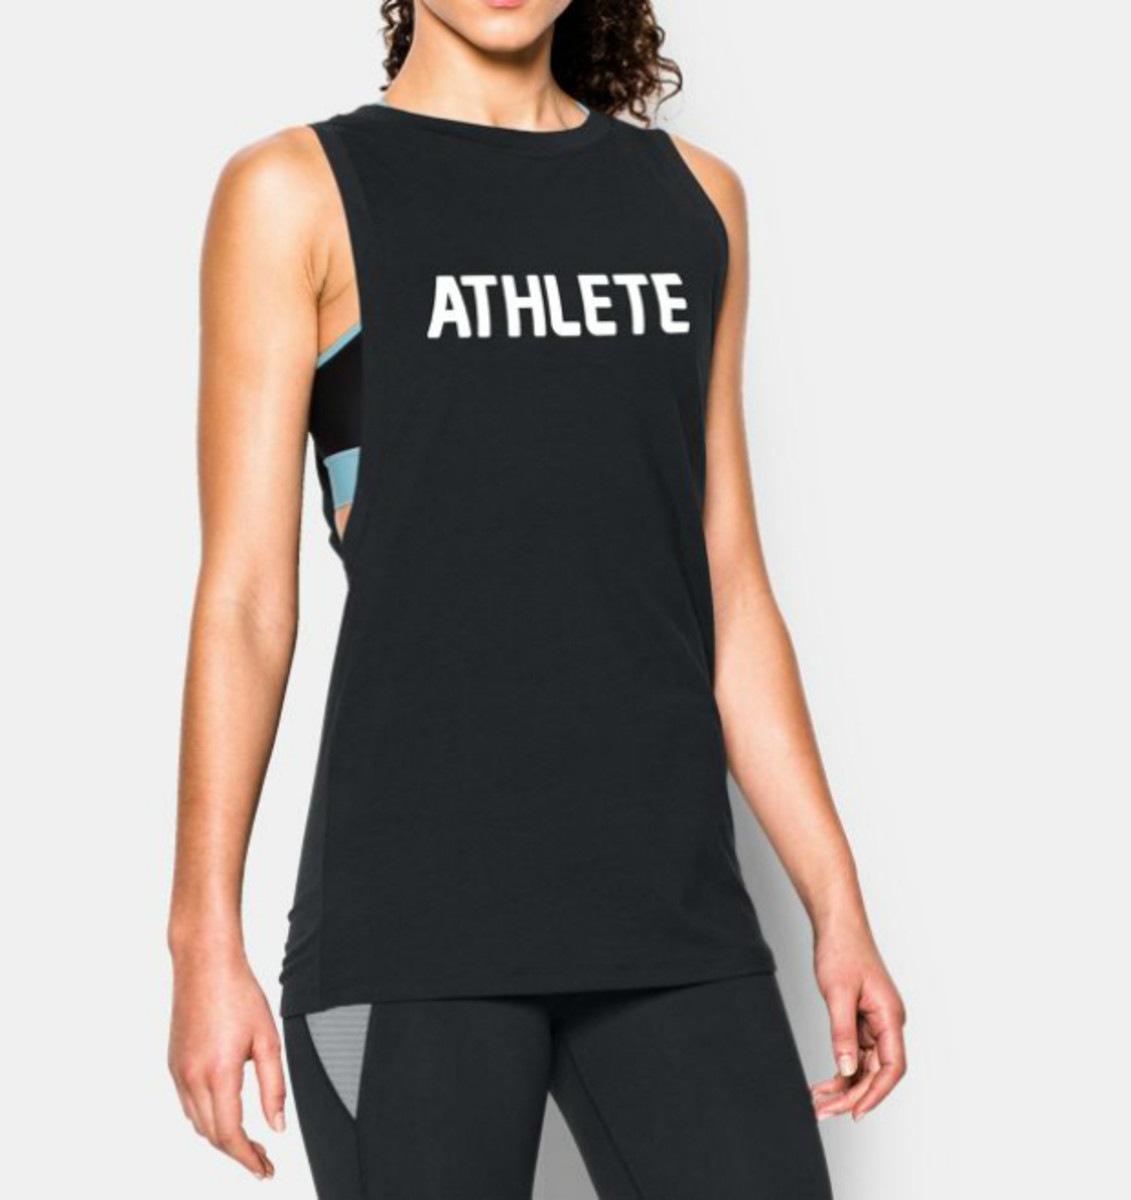 Under Armour Athlete Muscle Tank, $39.99, available at Under Armour.